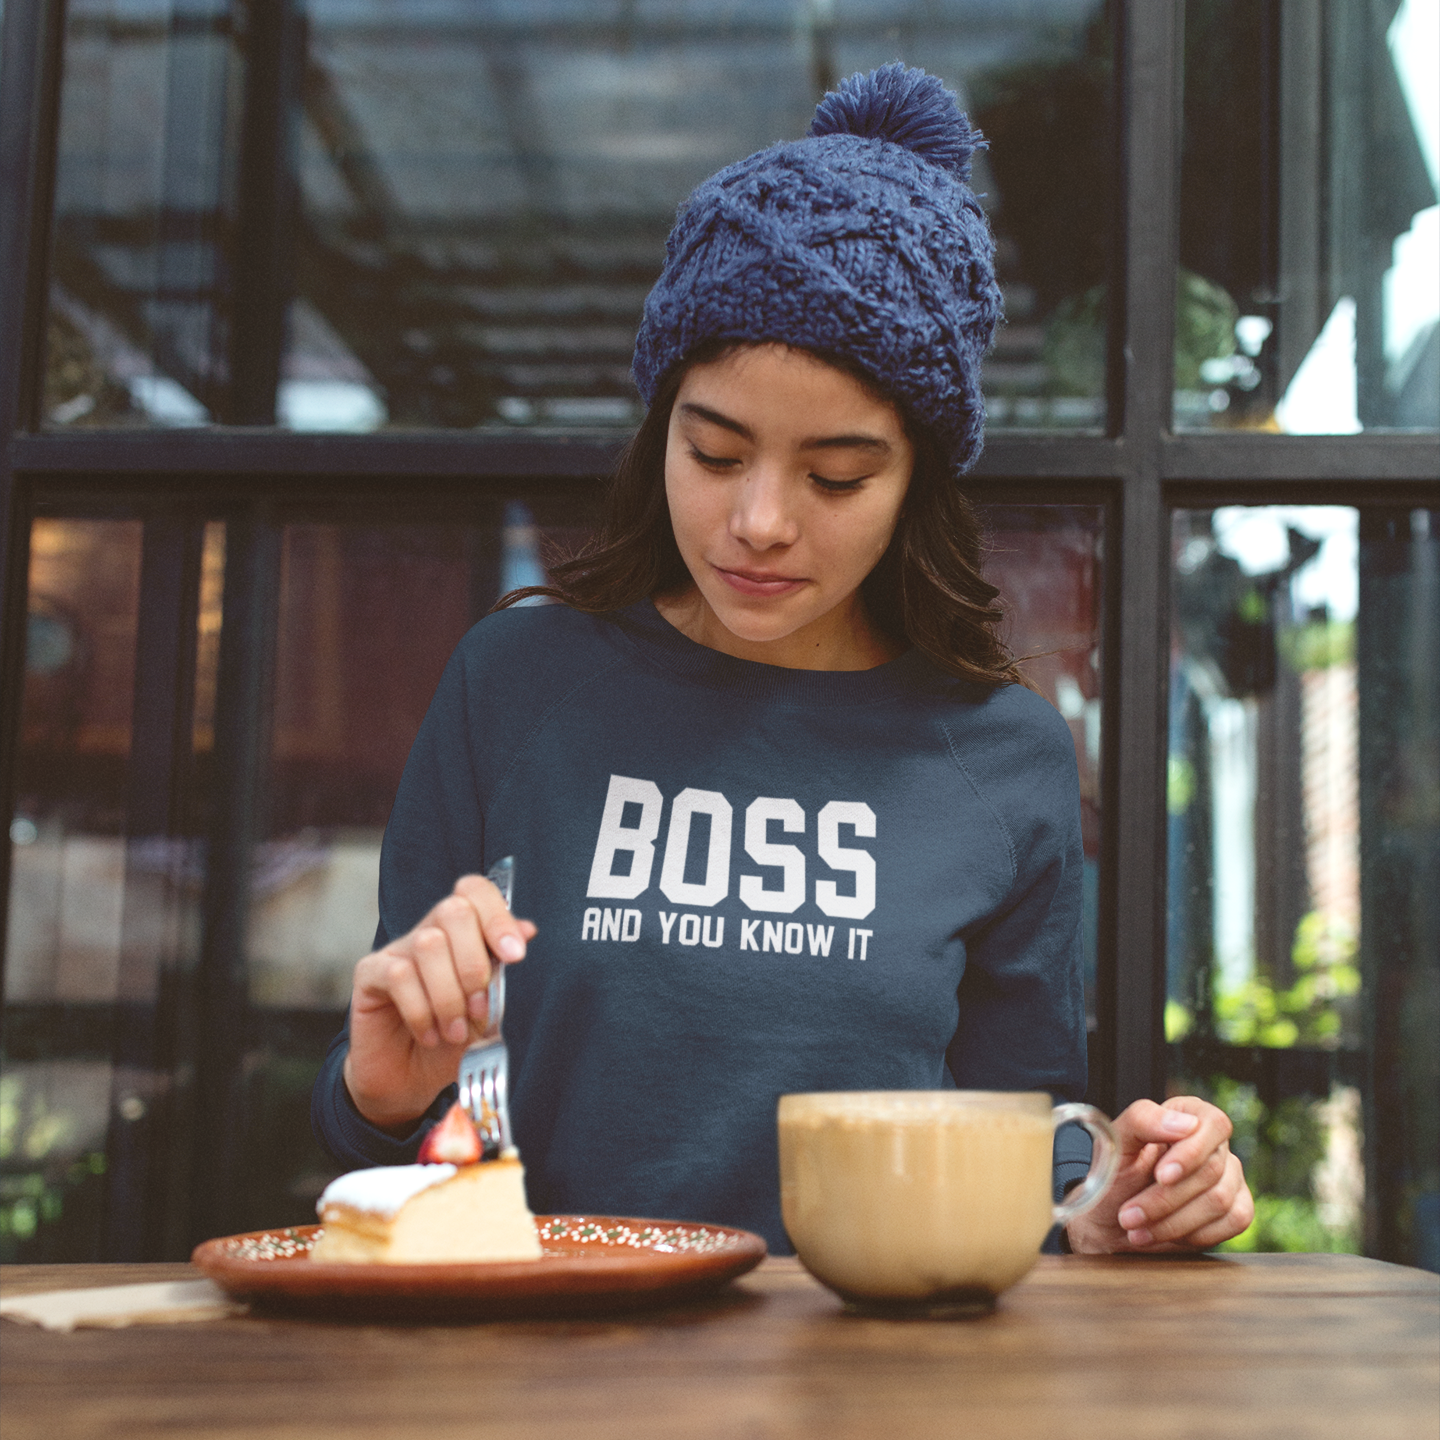 'Boss and you know it' sweater